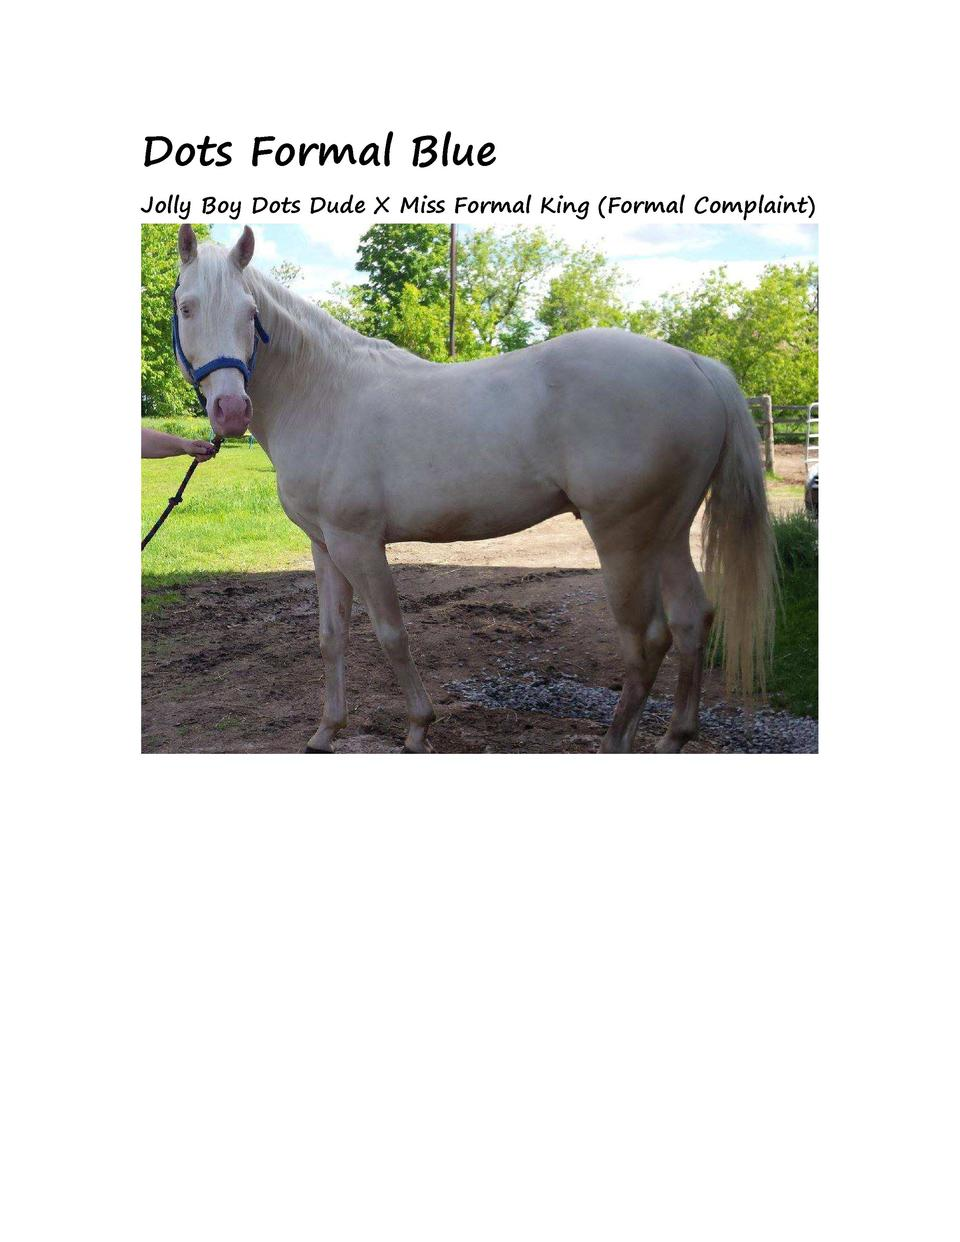 Dots Formal Blue Jolly Boy Dots Dude X Miss Formal King  Formal Complaint